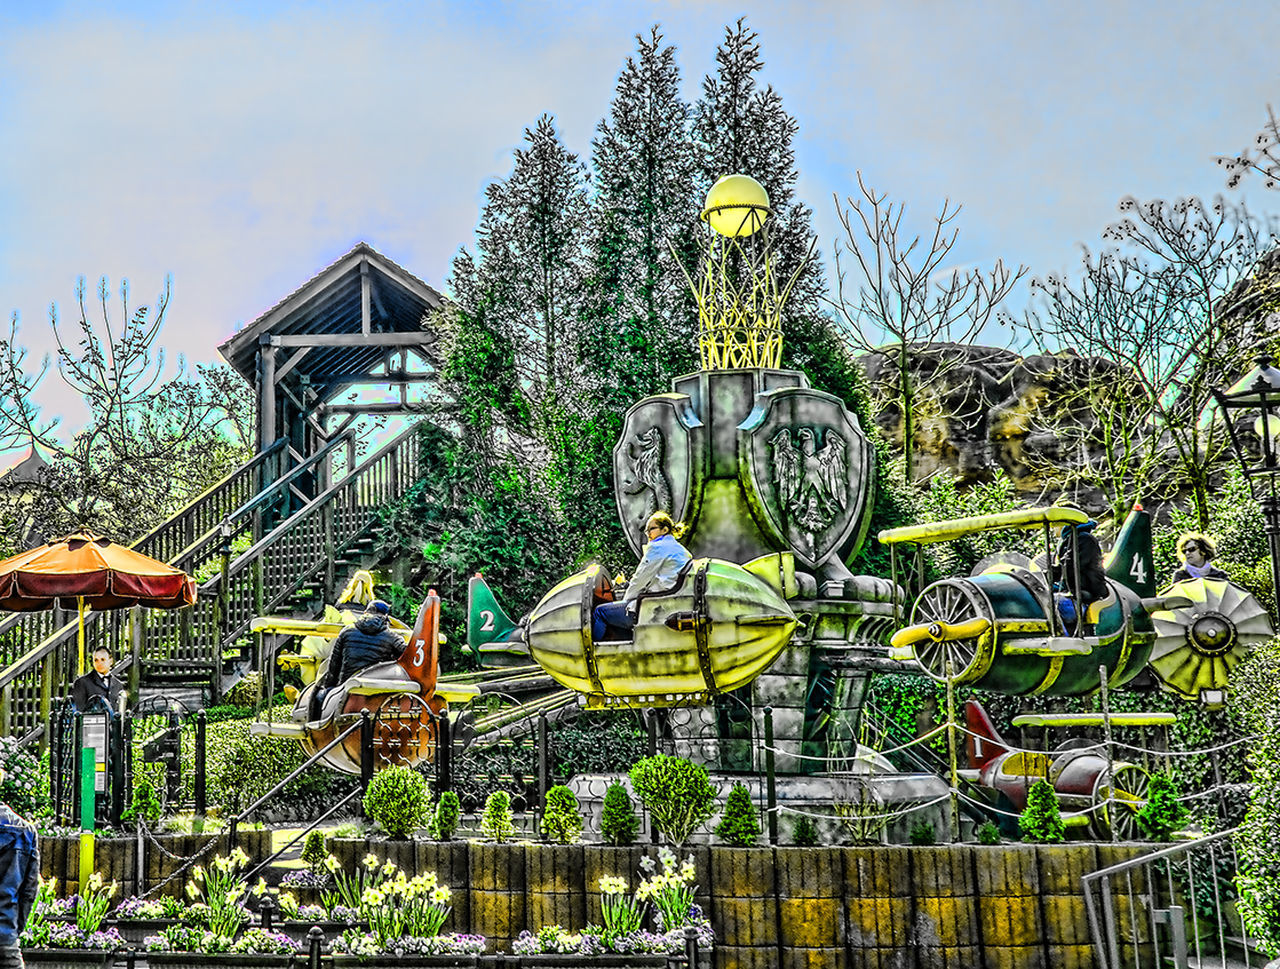 Phantasialand Amusement Parks Art Attraktion Craft Creativity Freizeitpark Green Color Hdrphotography Nature Phantasialand Pretpark Sculpture